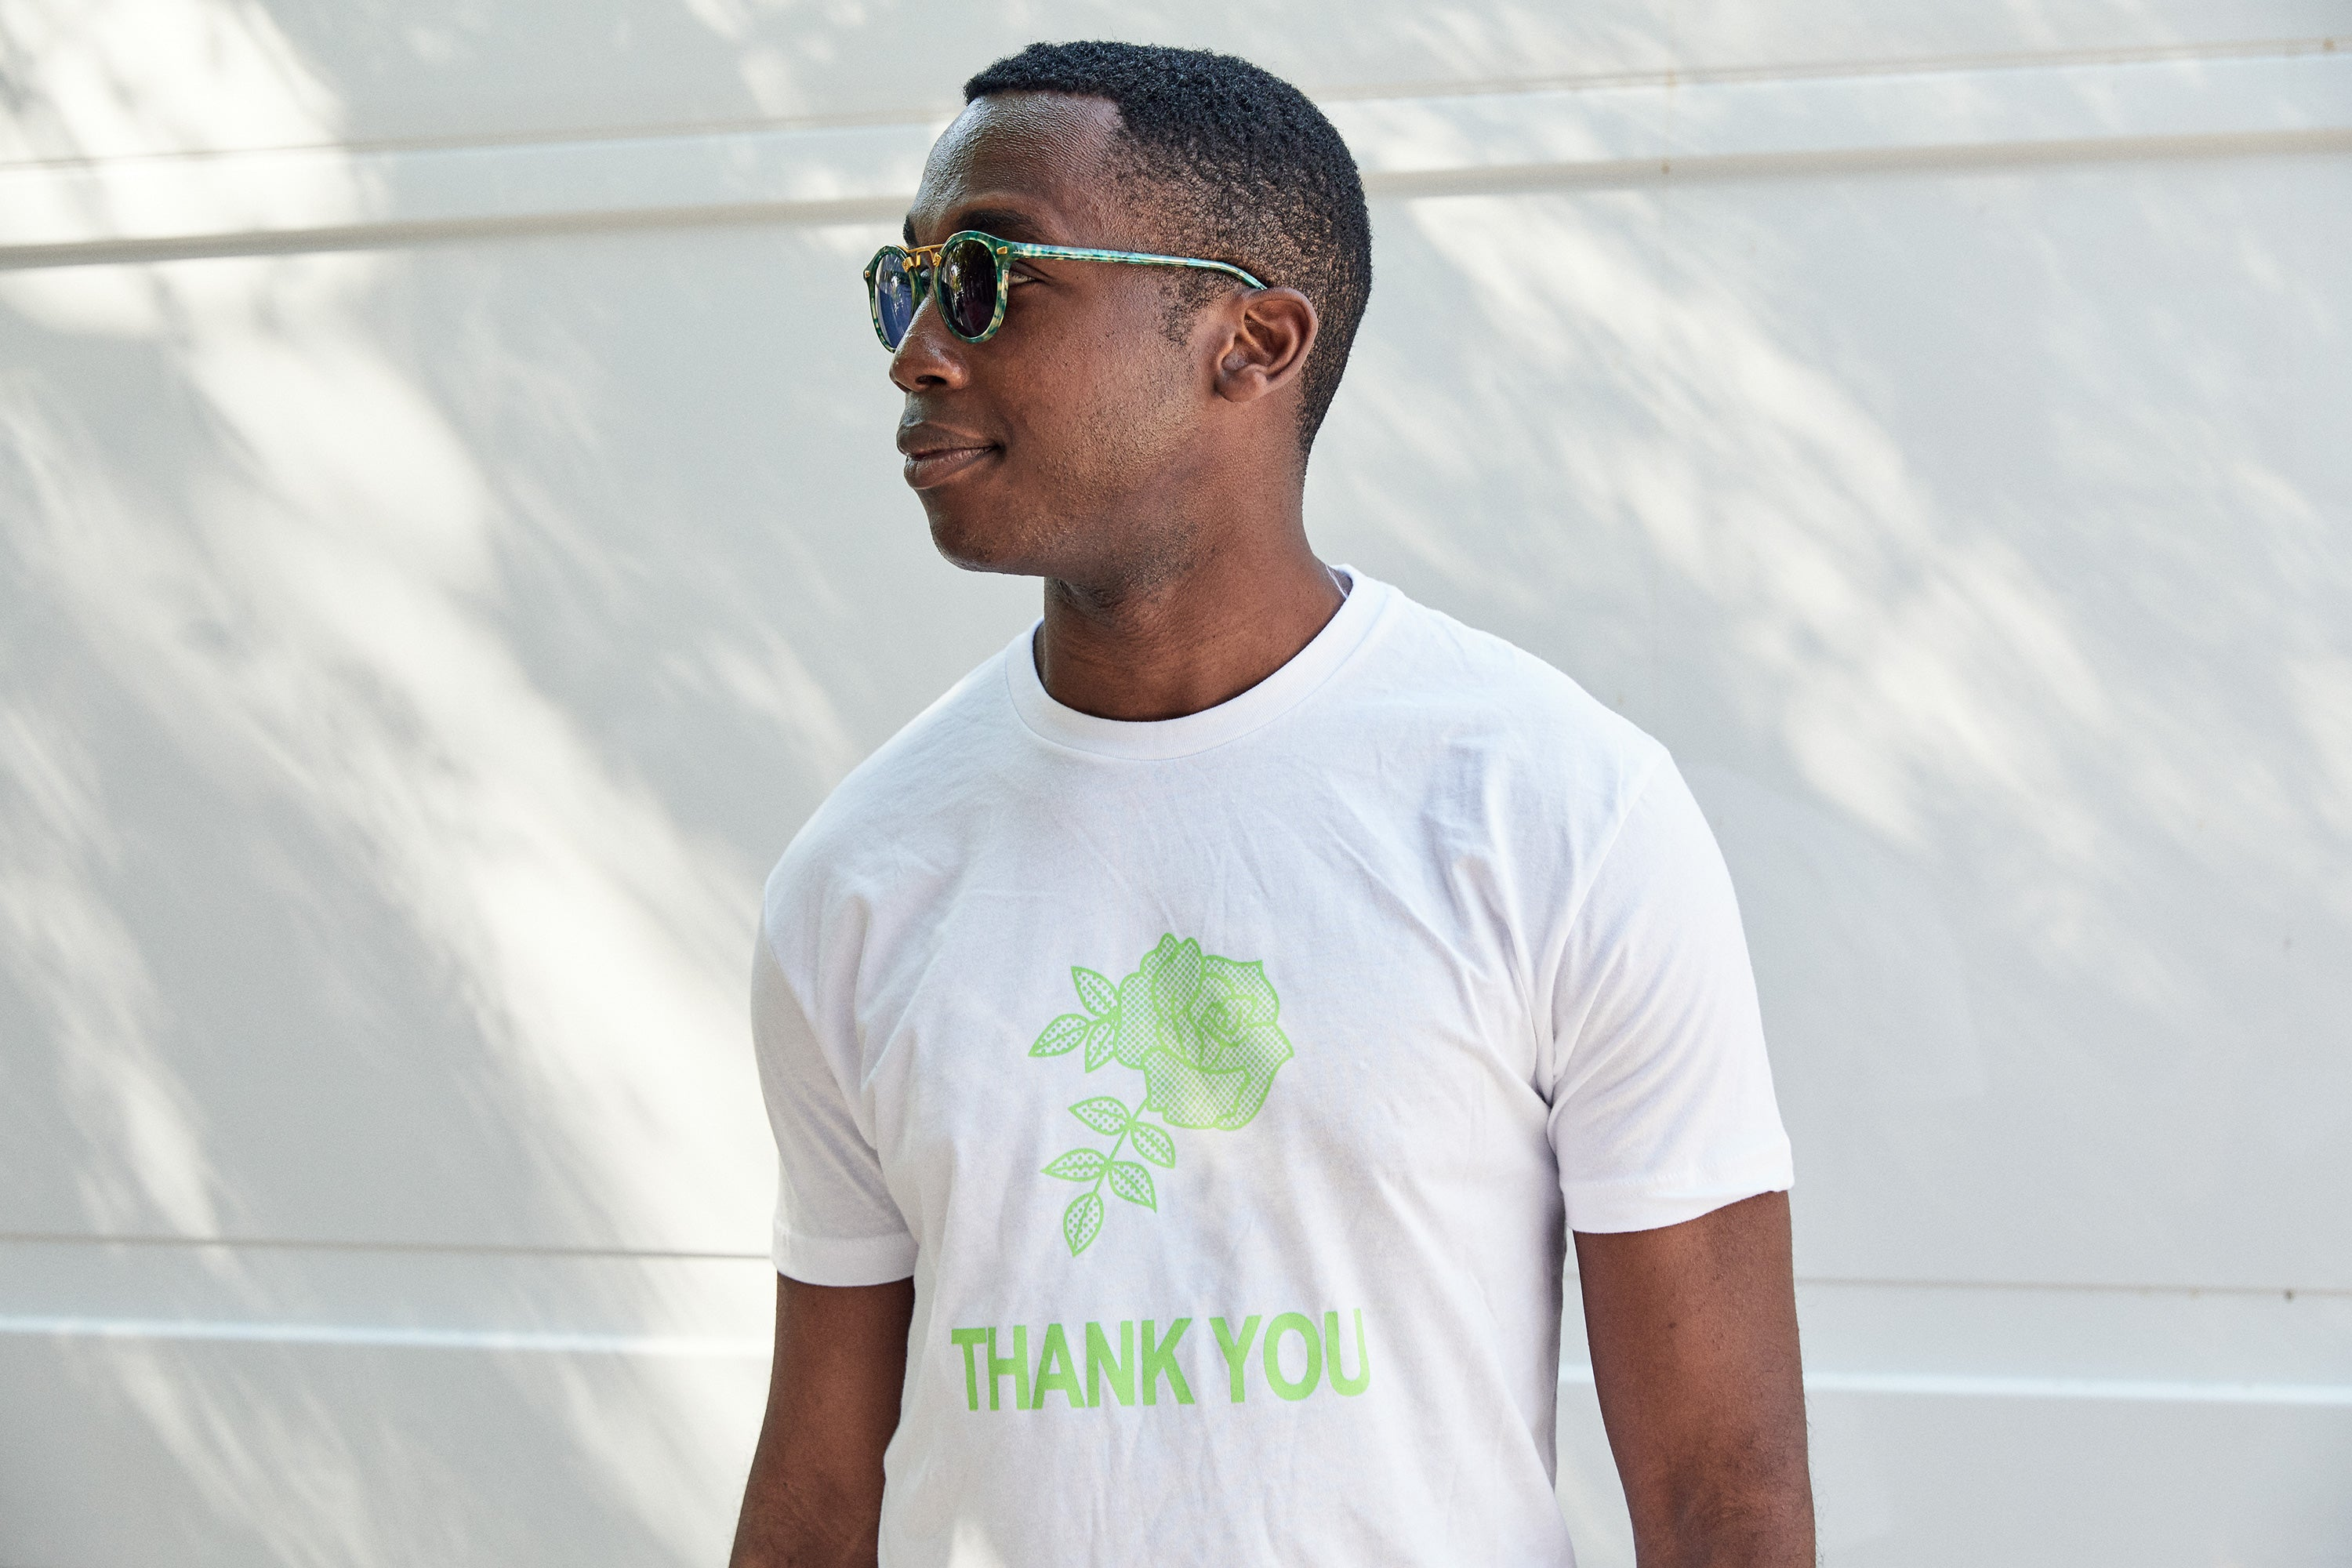 Gossamer x VEDA Thank You Tee